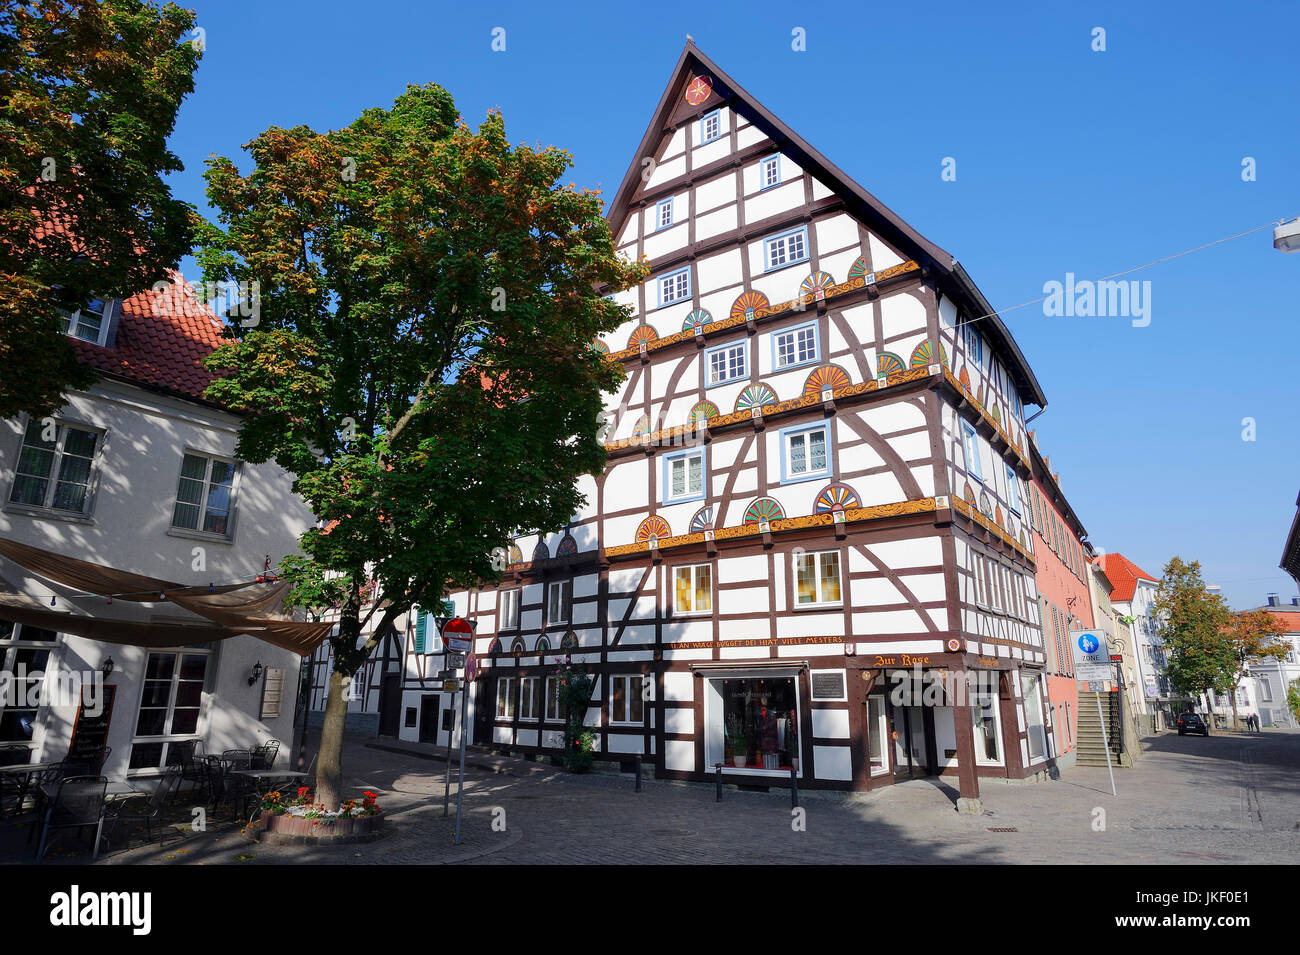 Timber-framed house 'Haus zur Rose', Soest, North Rhine-Westphalia, Germany | Fachwerkhaus 'Haus zur - Stock Image